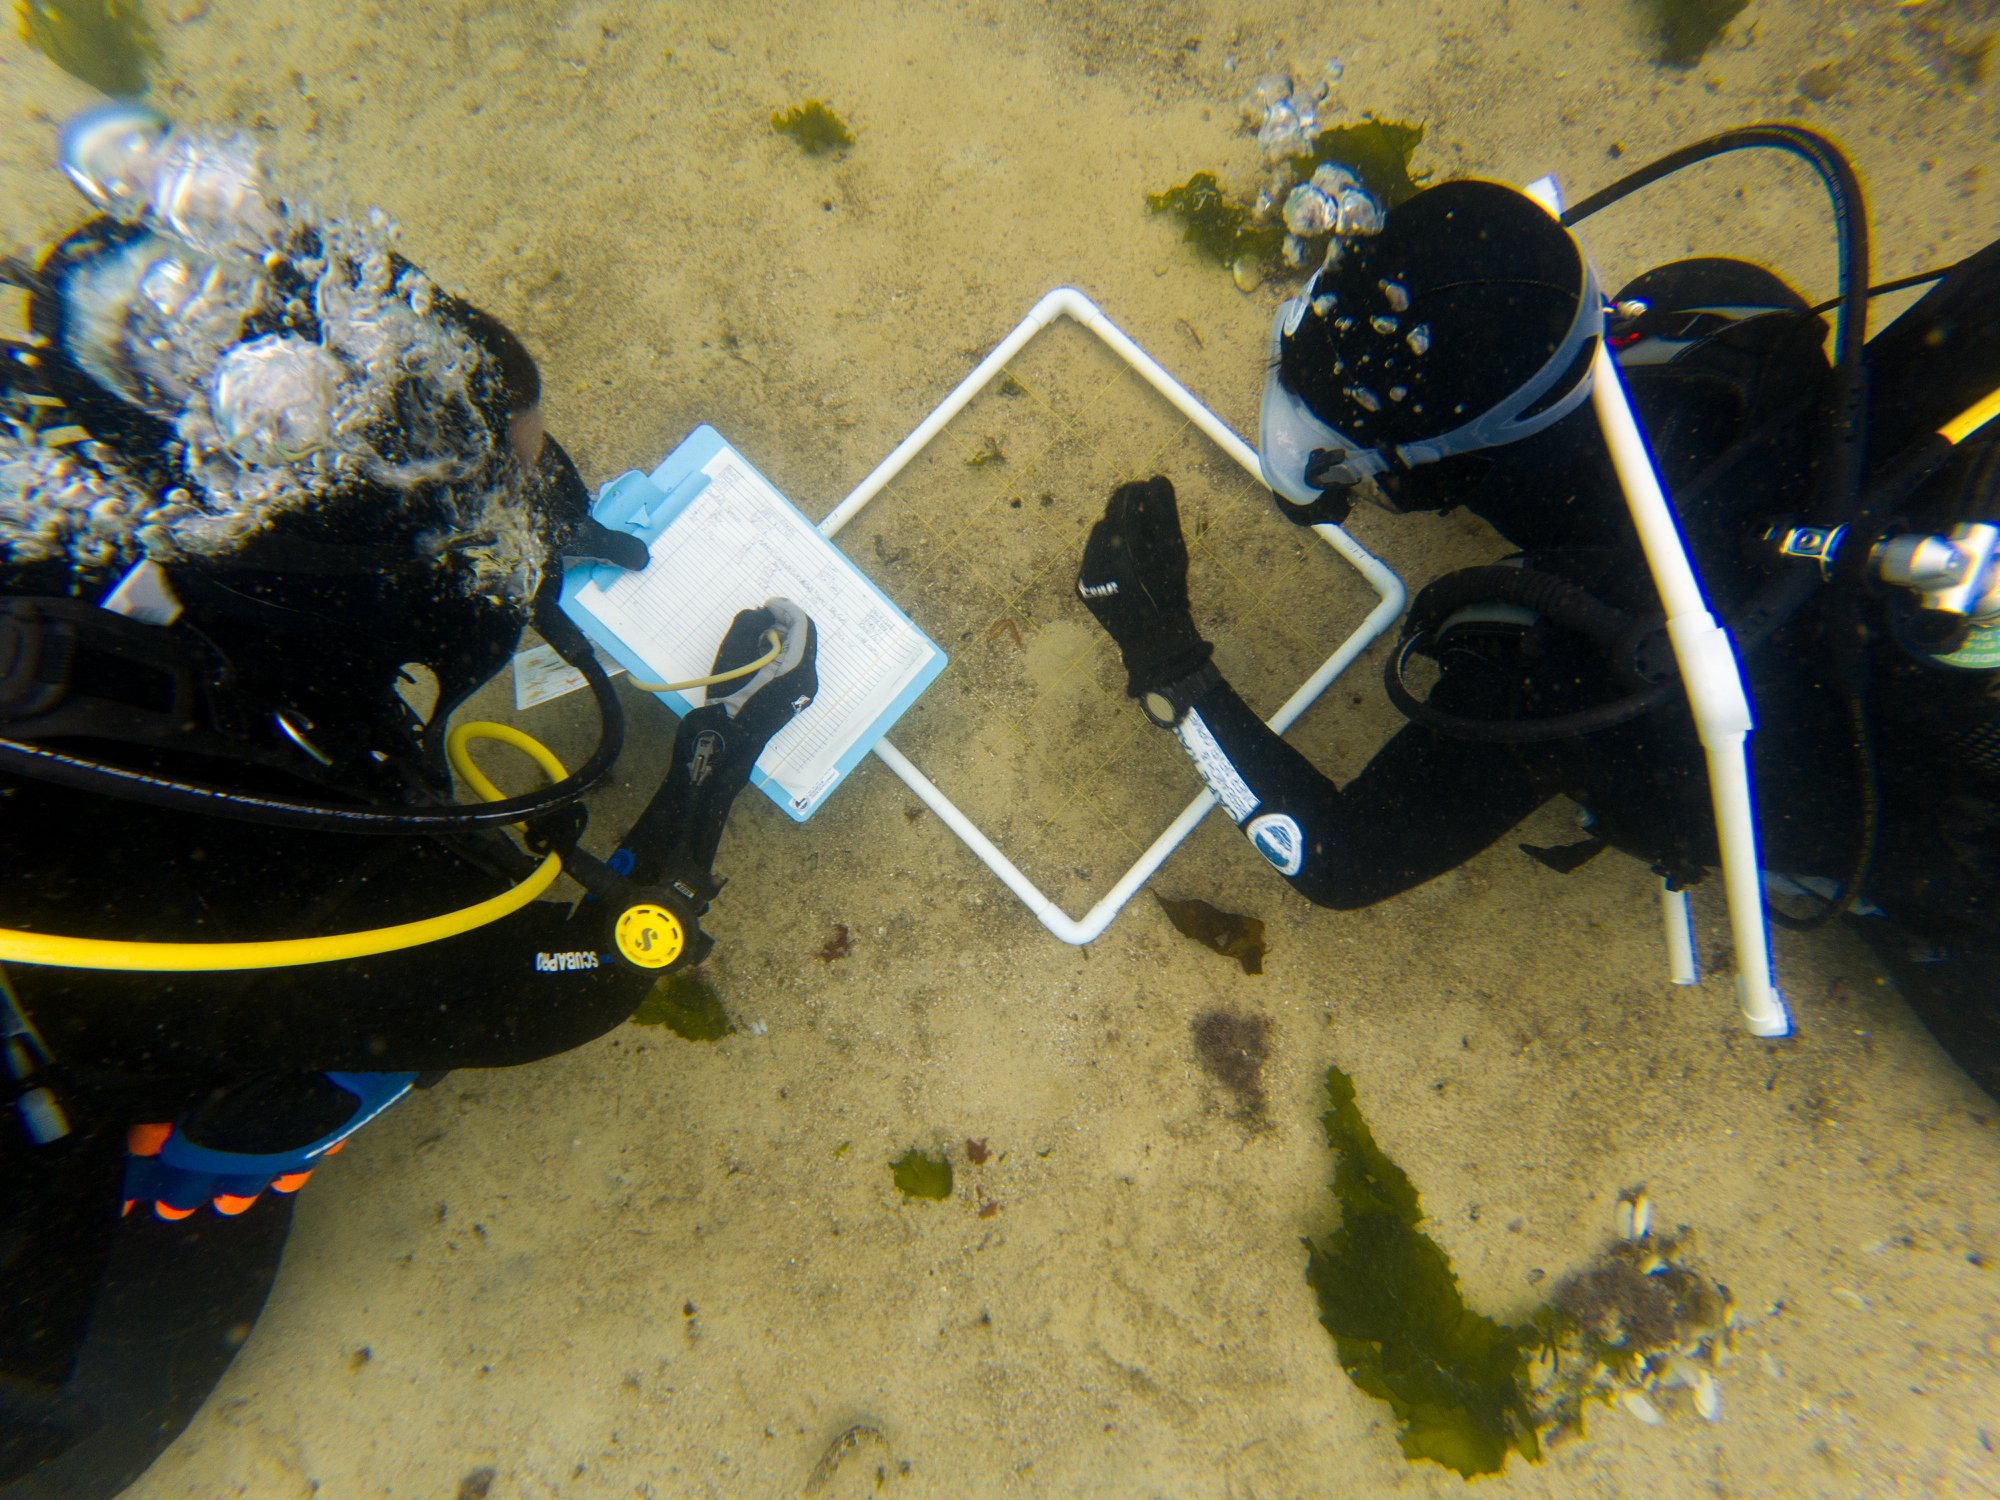 Divers sample from a quadrat